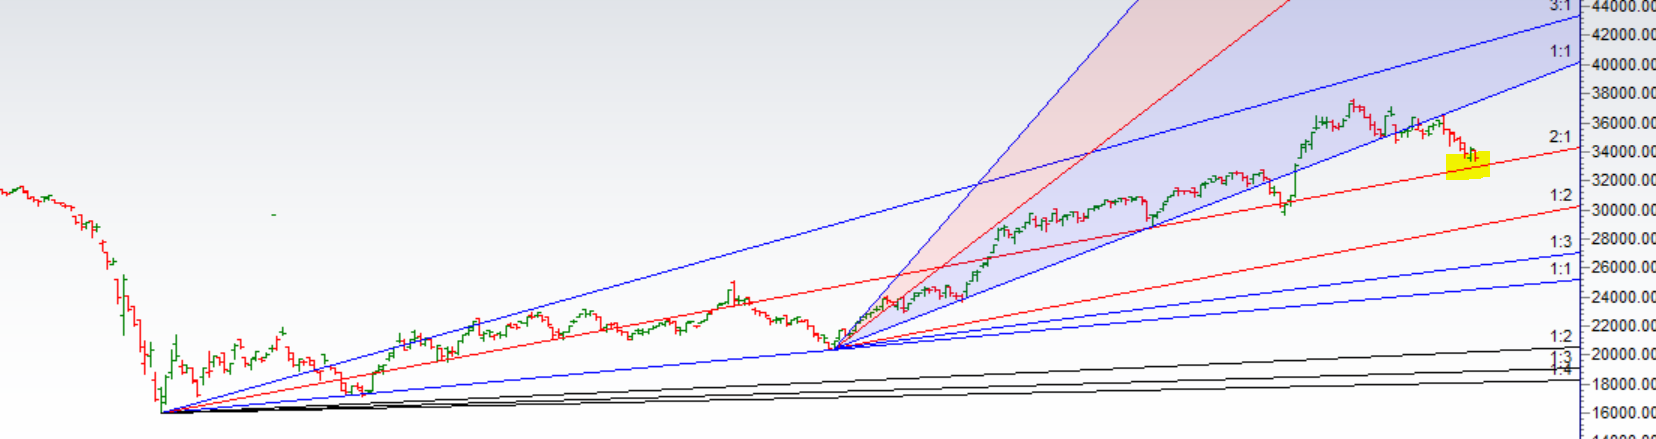 Bank Nifty Analysis for 23 March